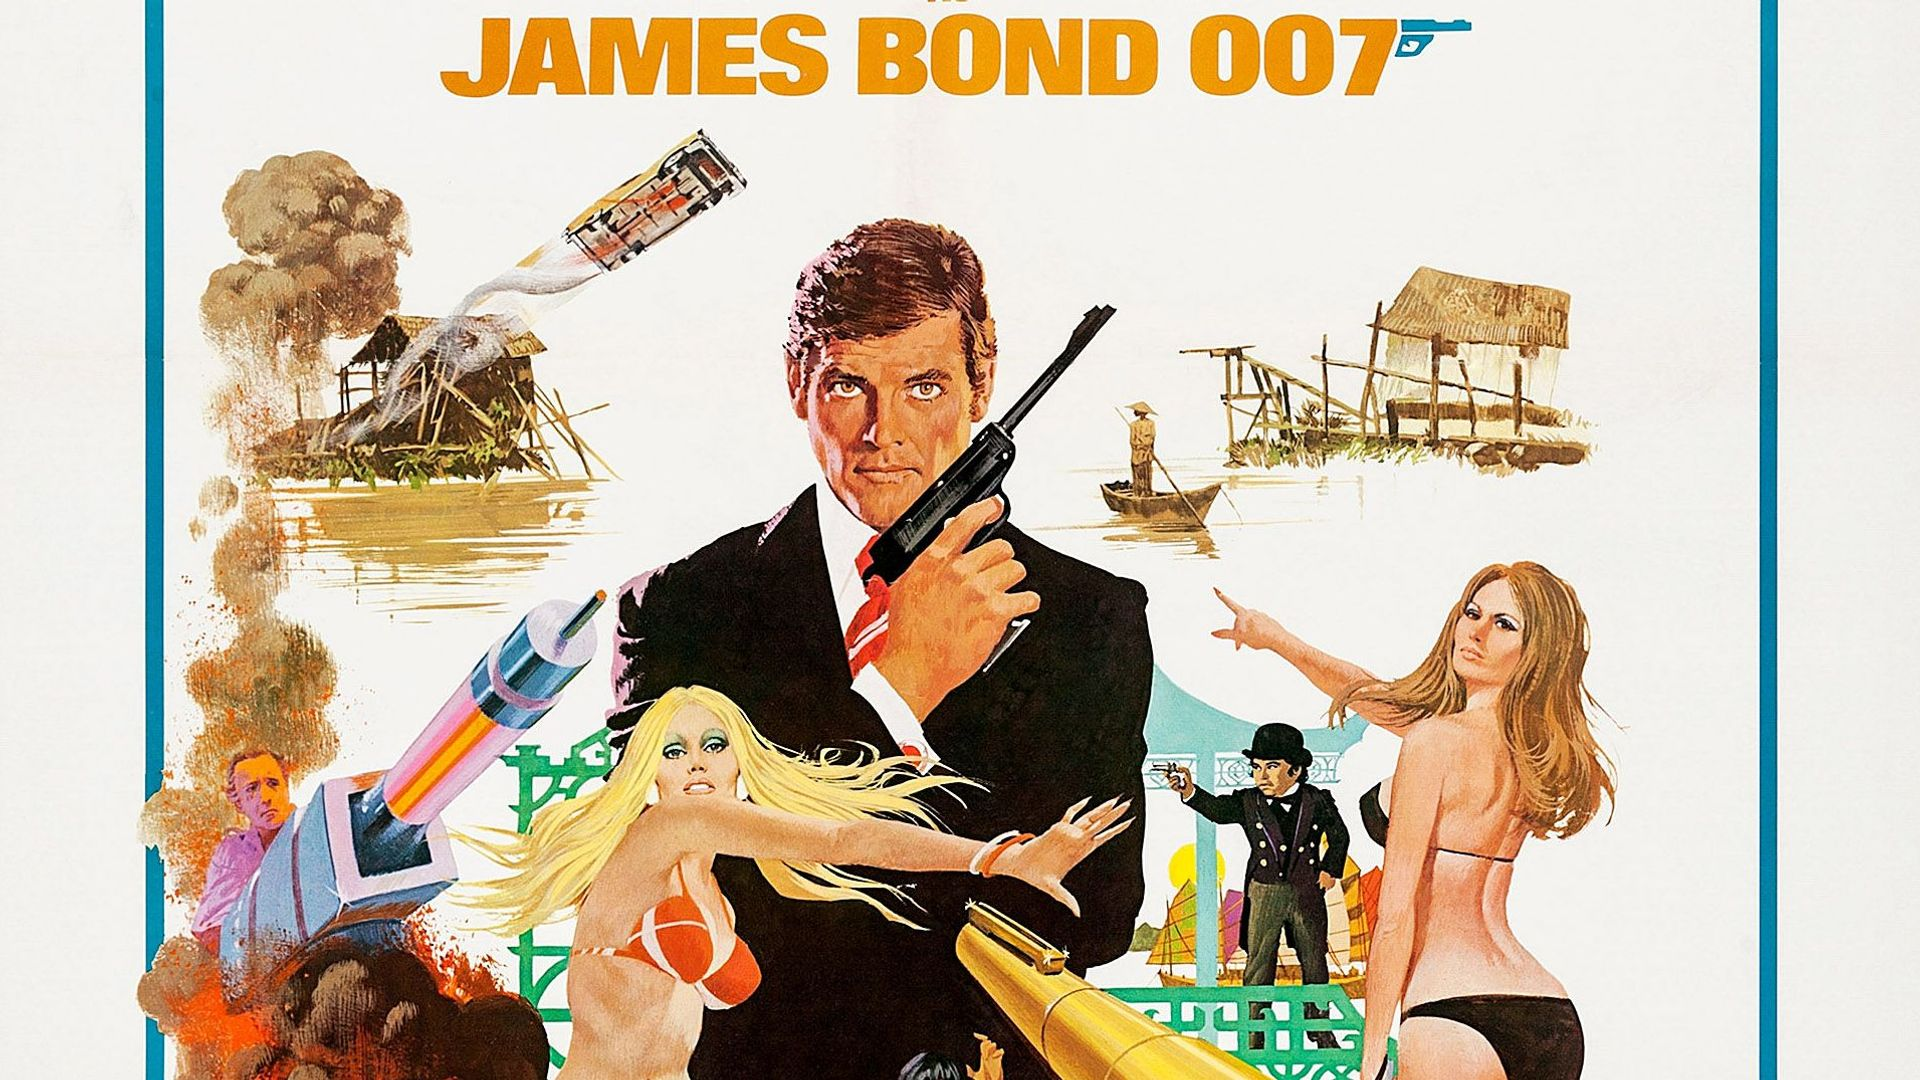 Bond Posters: The Man with the Golden Gun